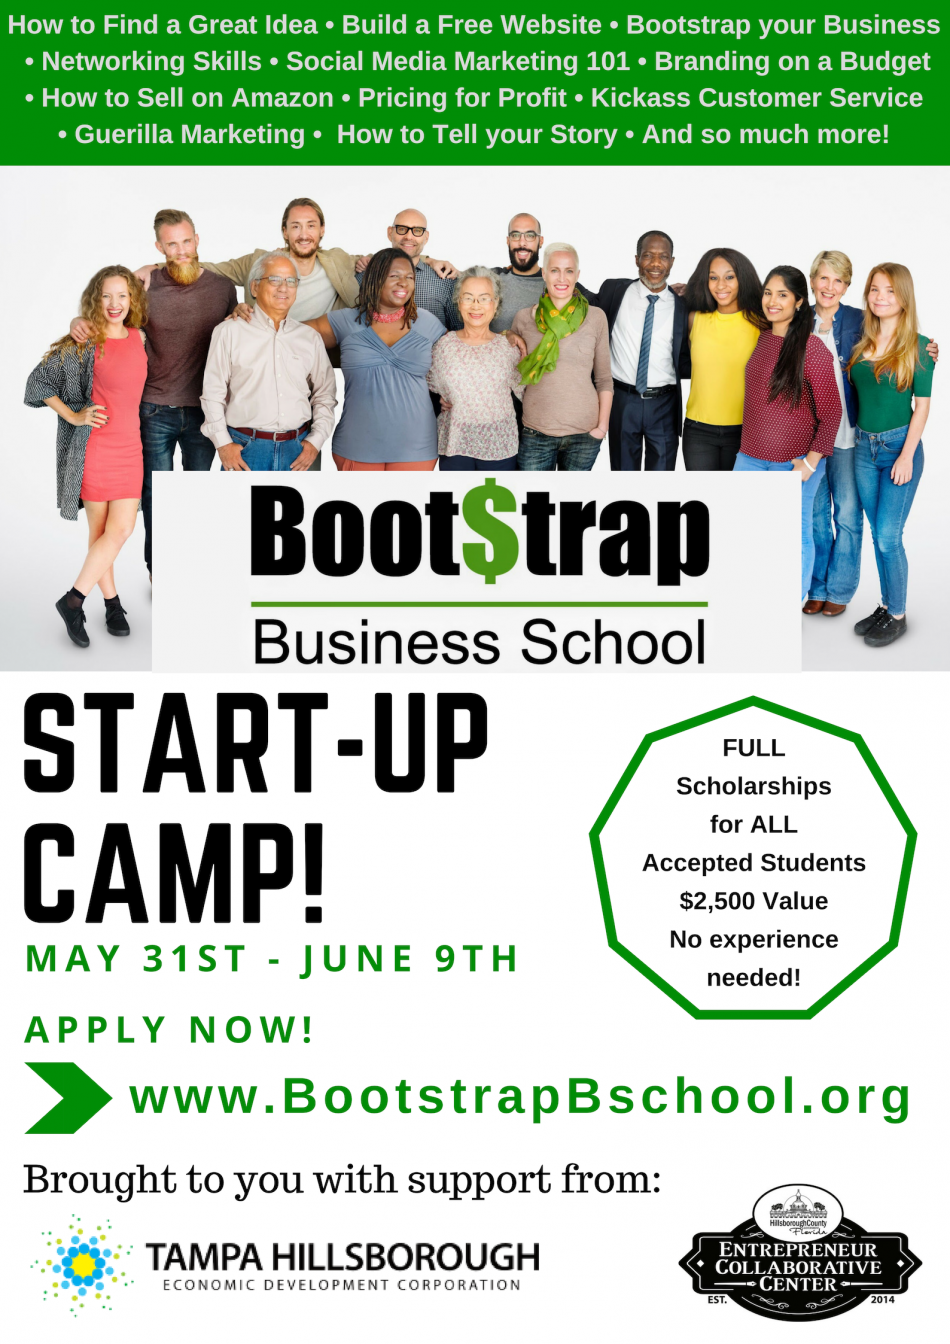 Bootstrap Business School START-UP CAMP!